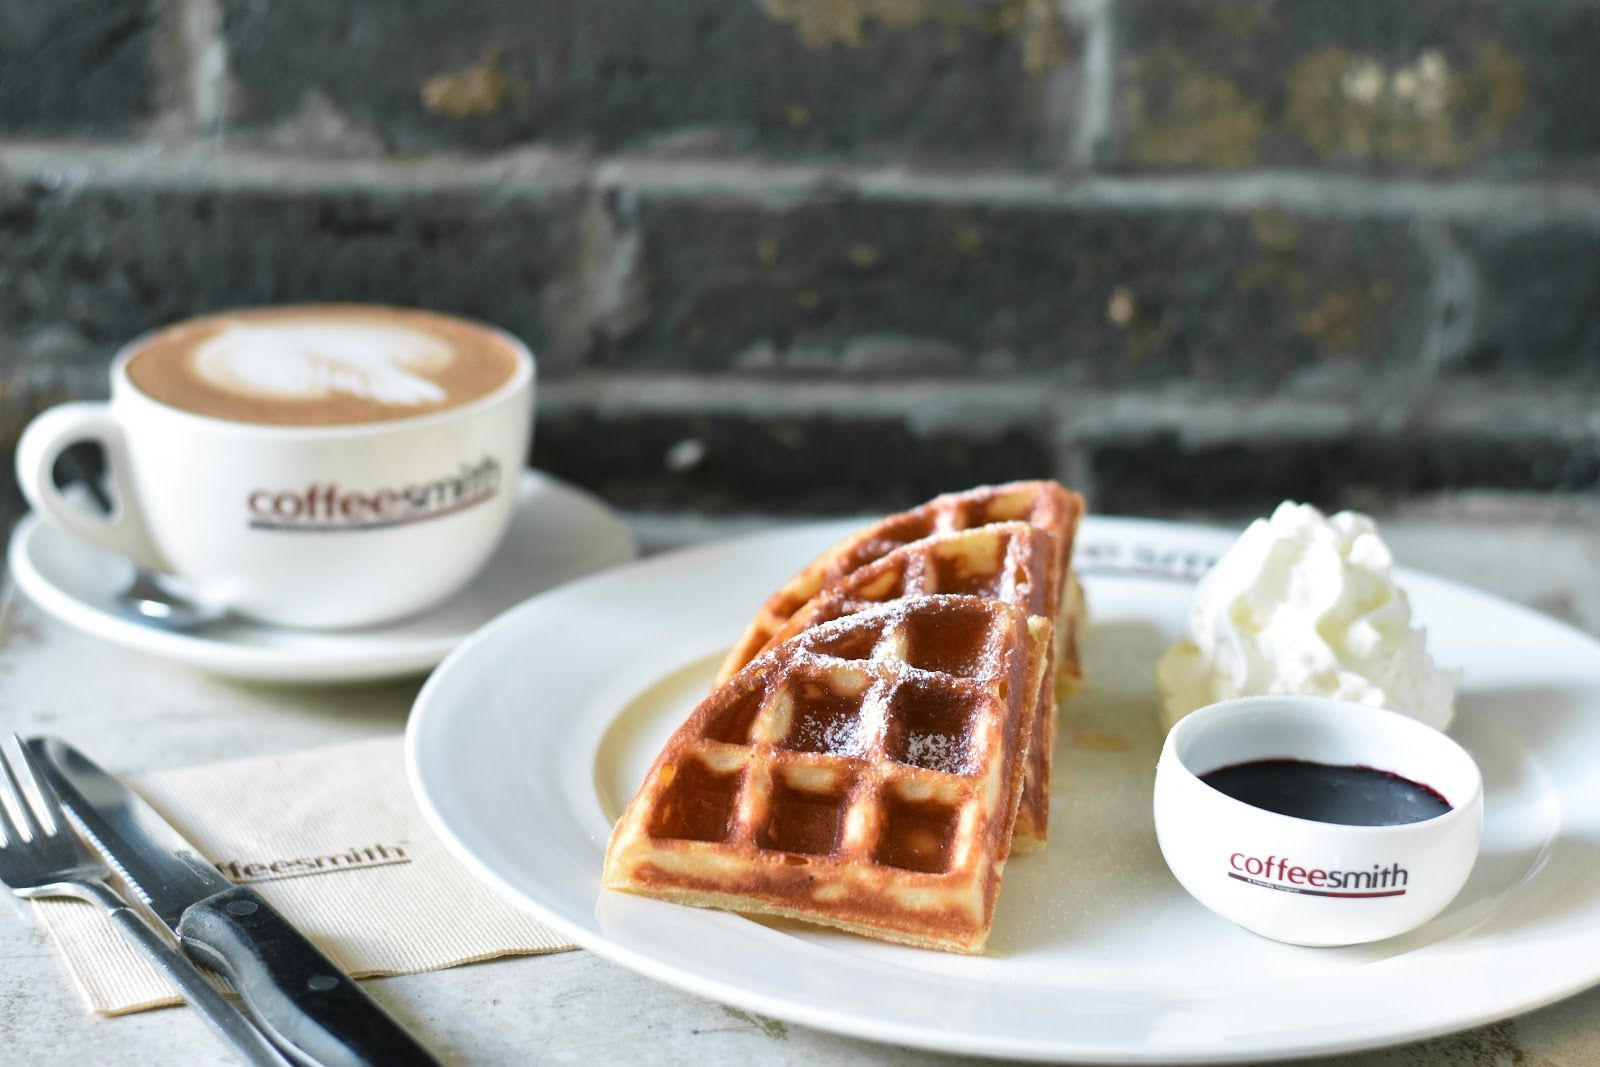 Coffeesmith: A warm and delightful experience